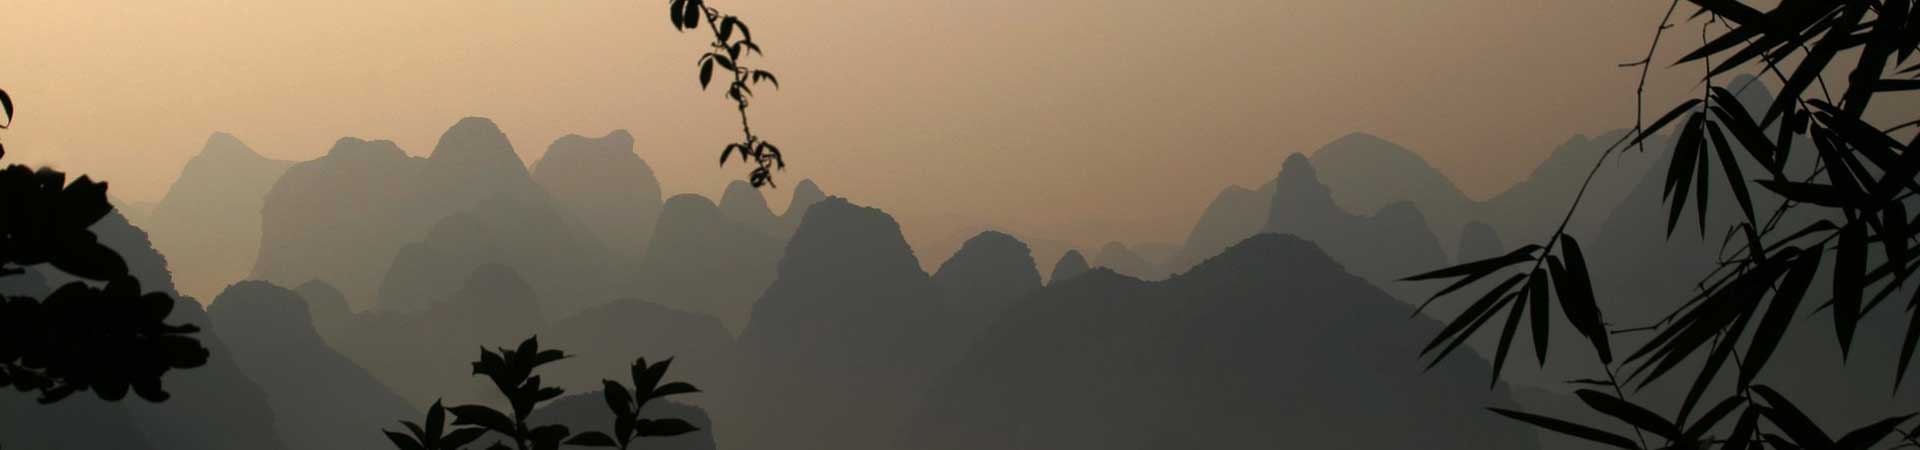 5D4N Guilin Beauty